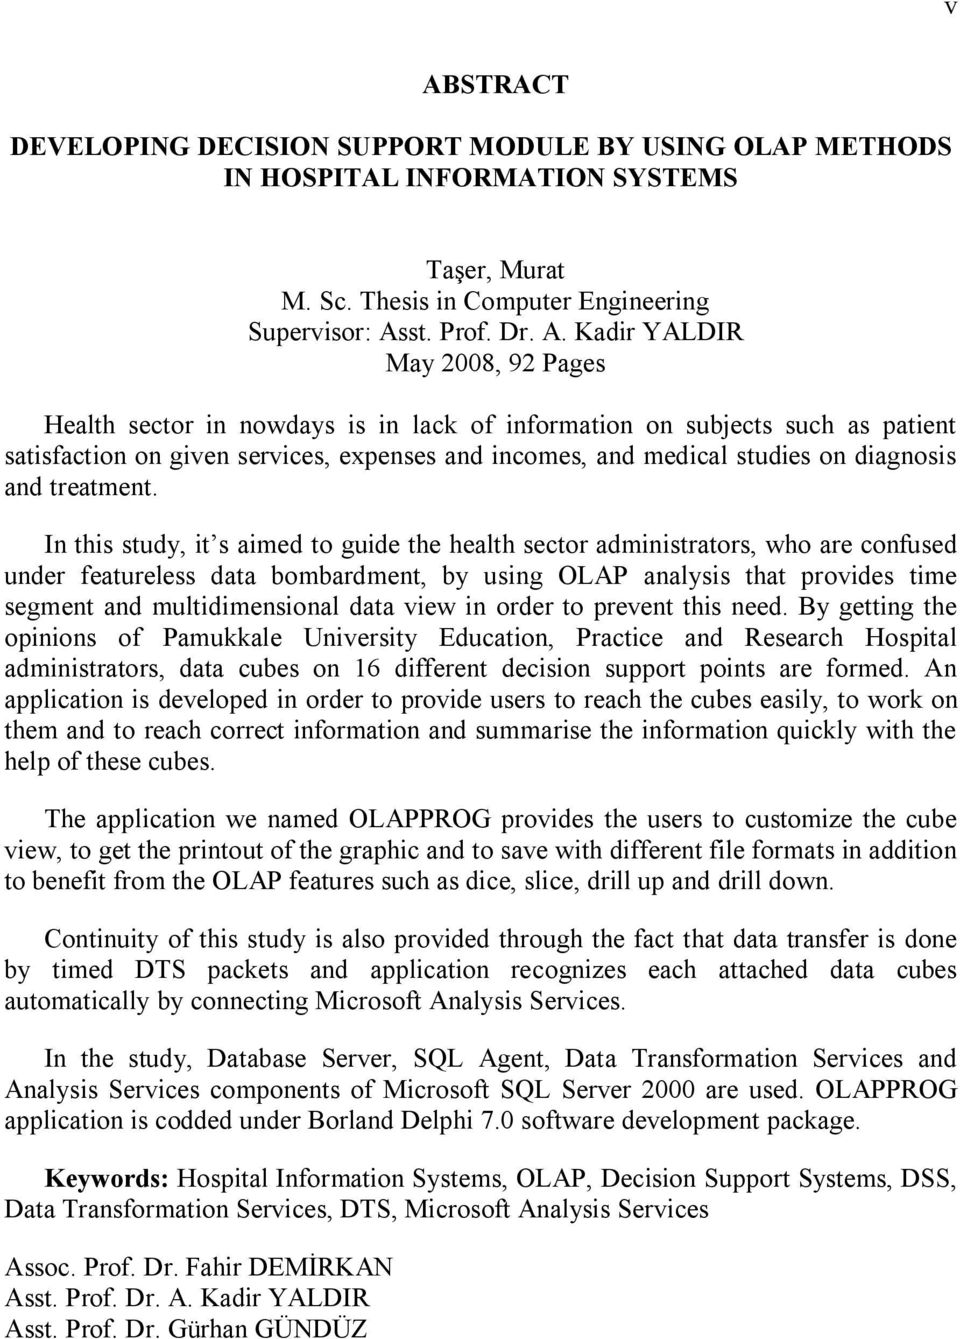 In this study, it s aimed to guide the health sector administrators, who are confused under featureless data bombardment, by using OLAP analysis that provides time segment and multidimensional data